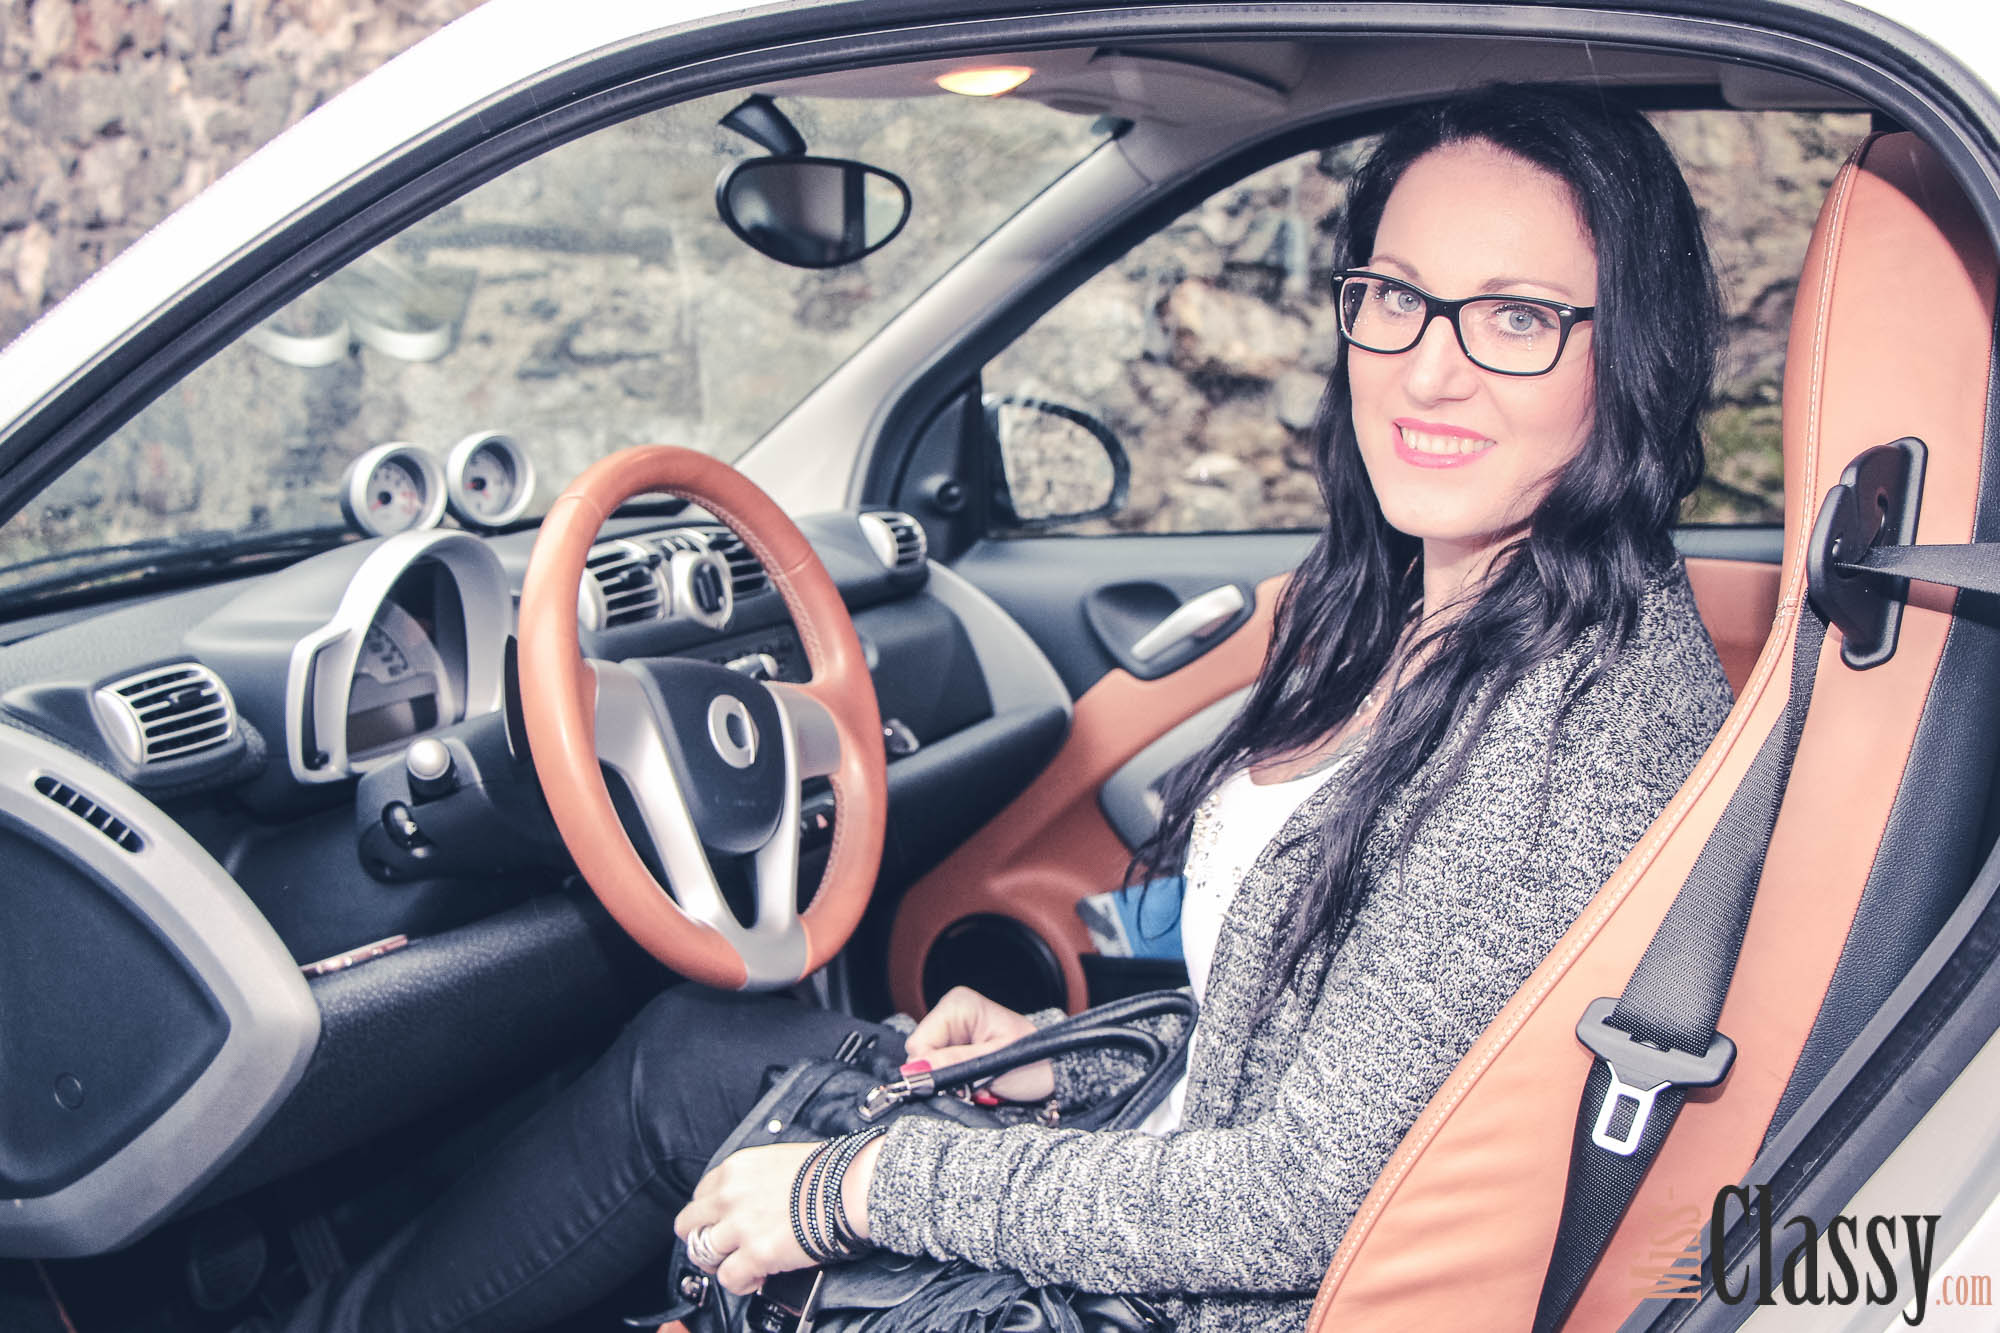 Smartie and Me - Mein neues Miss-Classy-Mobil